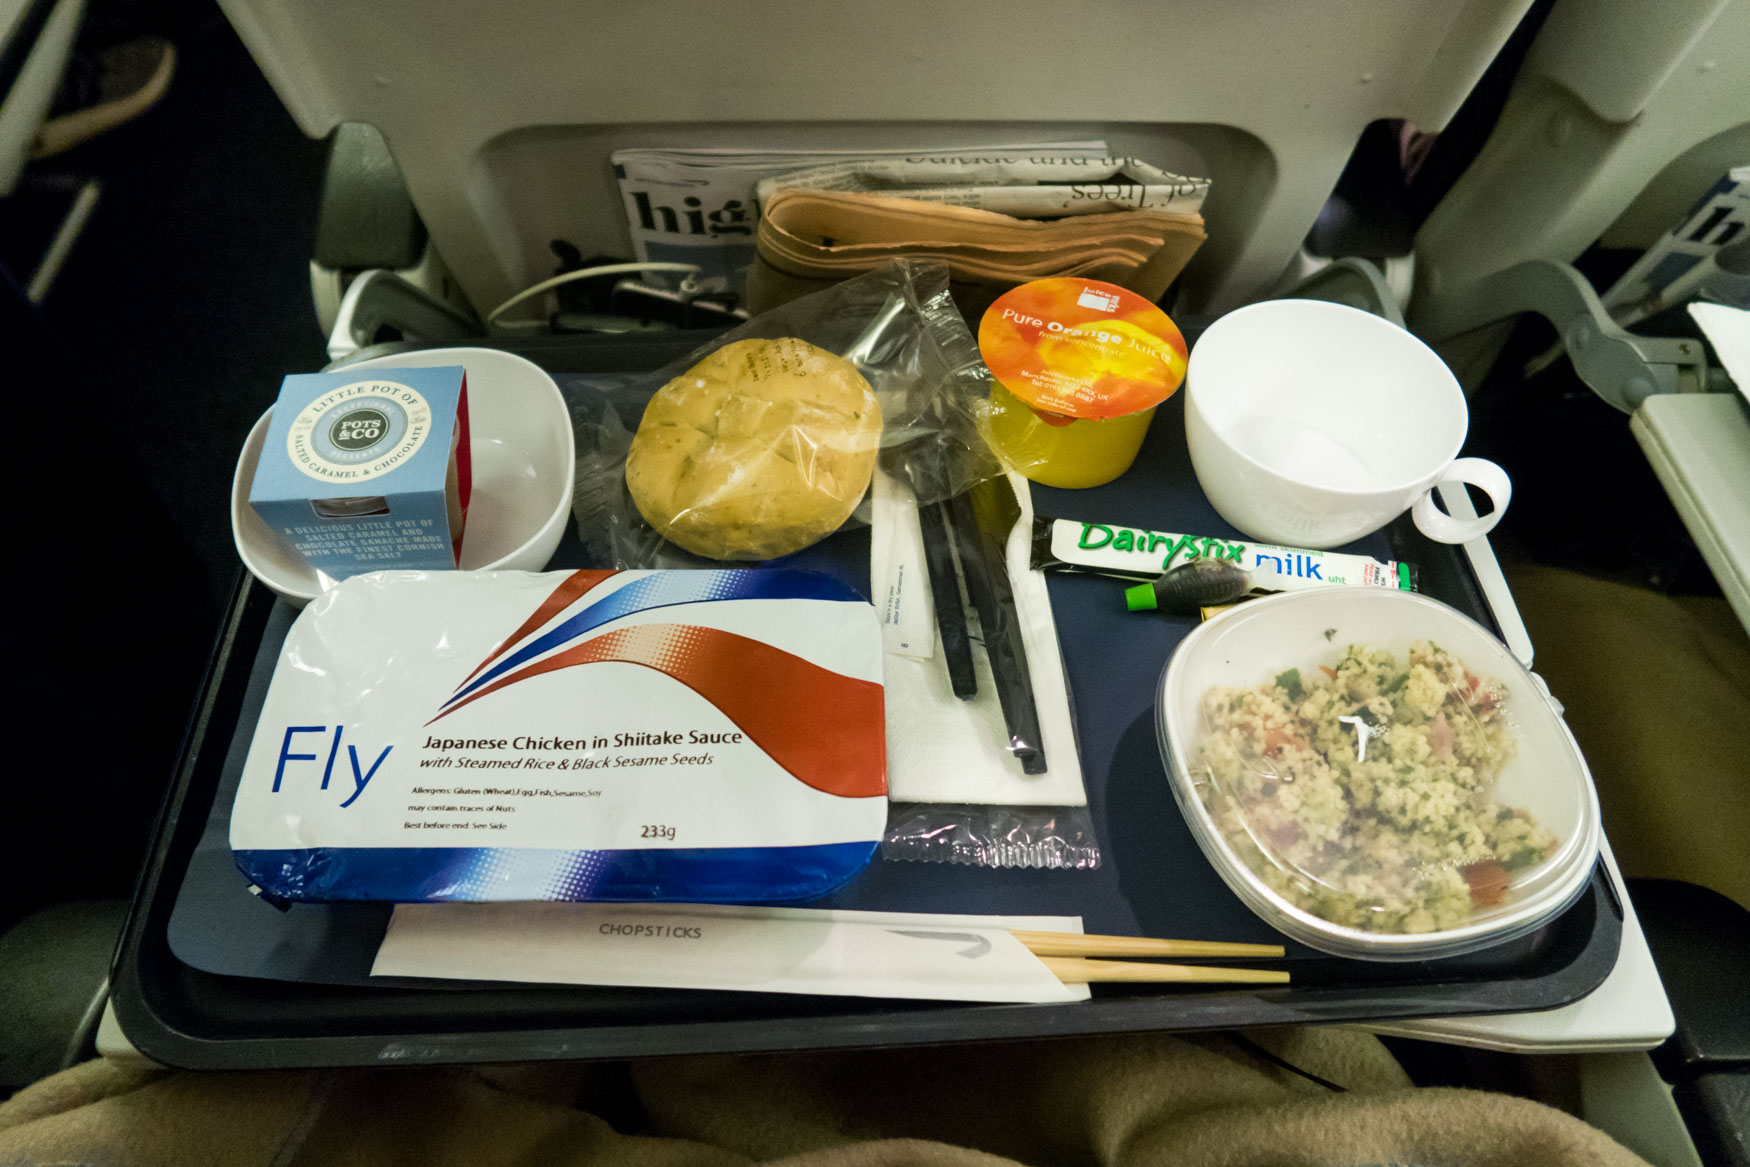 British Airways Longhaul Economy Class Meal